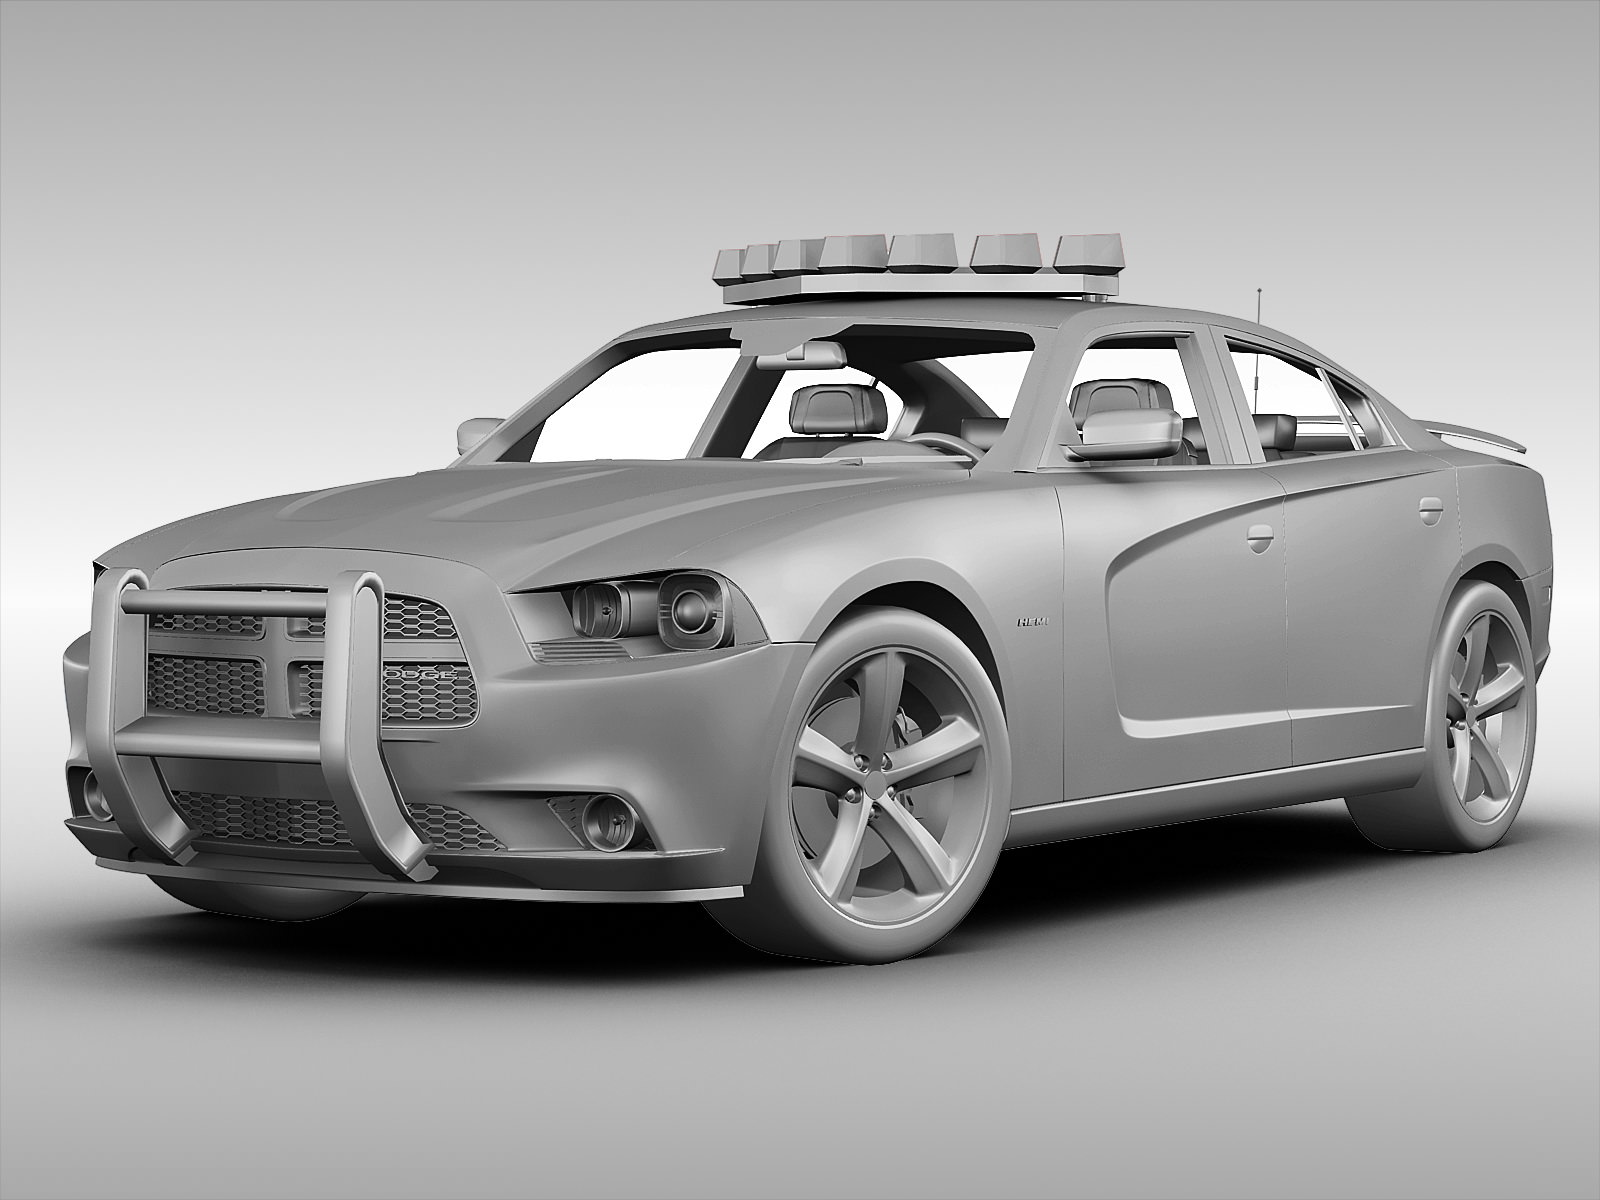 3d Model Dodge Charger Nypd Police Car 2013 Cgtrader